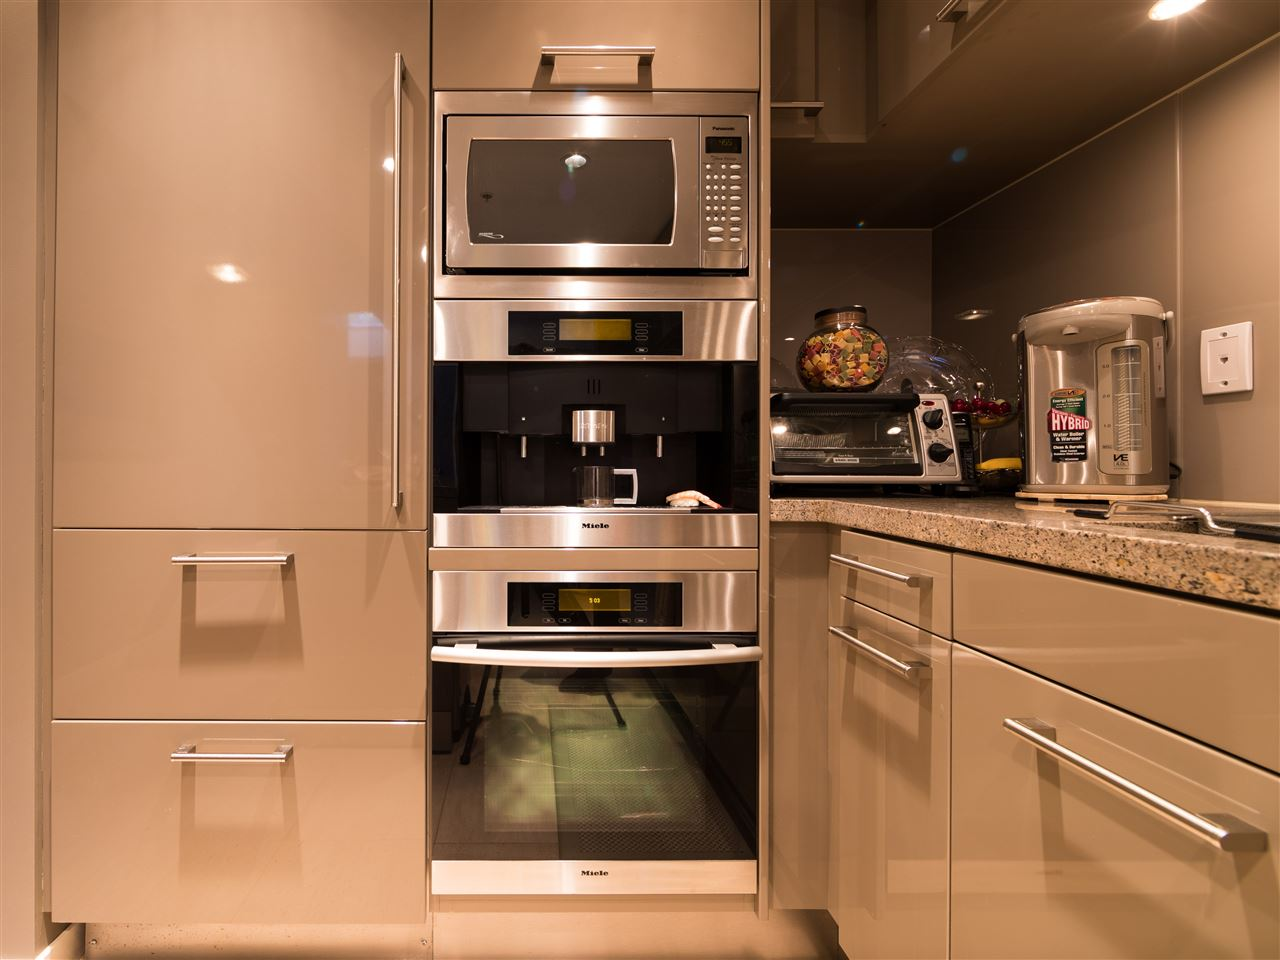 Condo Apartment at TH8 5991 WALTER GAGE ROAD, Unit TH8, Vancouver West, British Columbia. Image 10